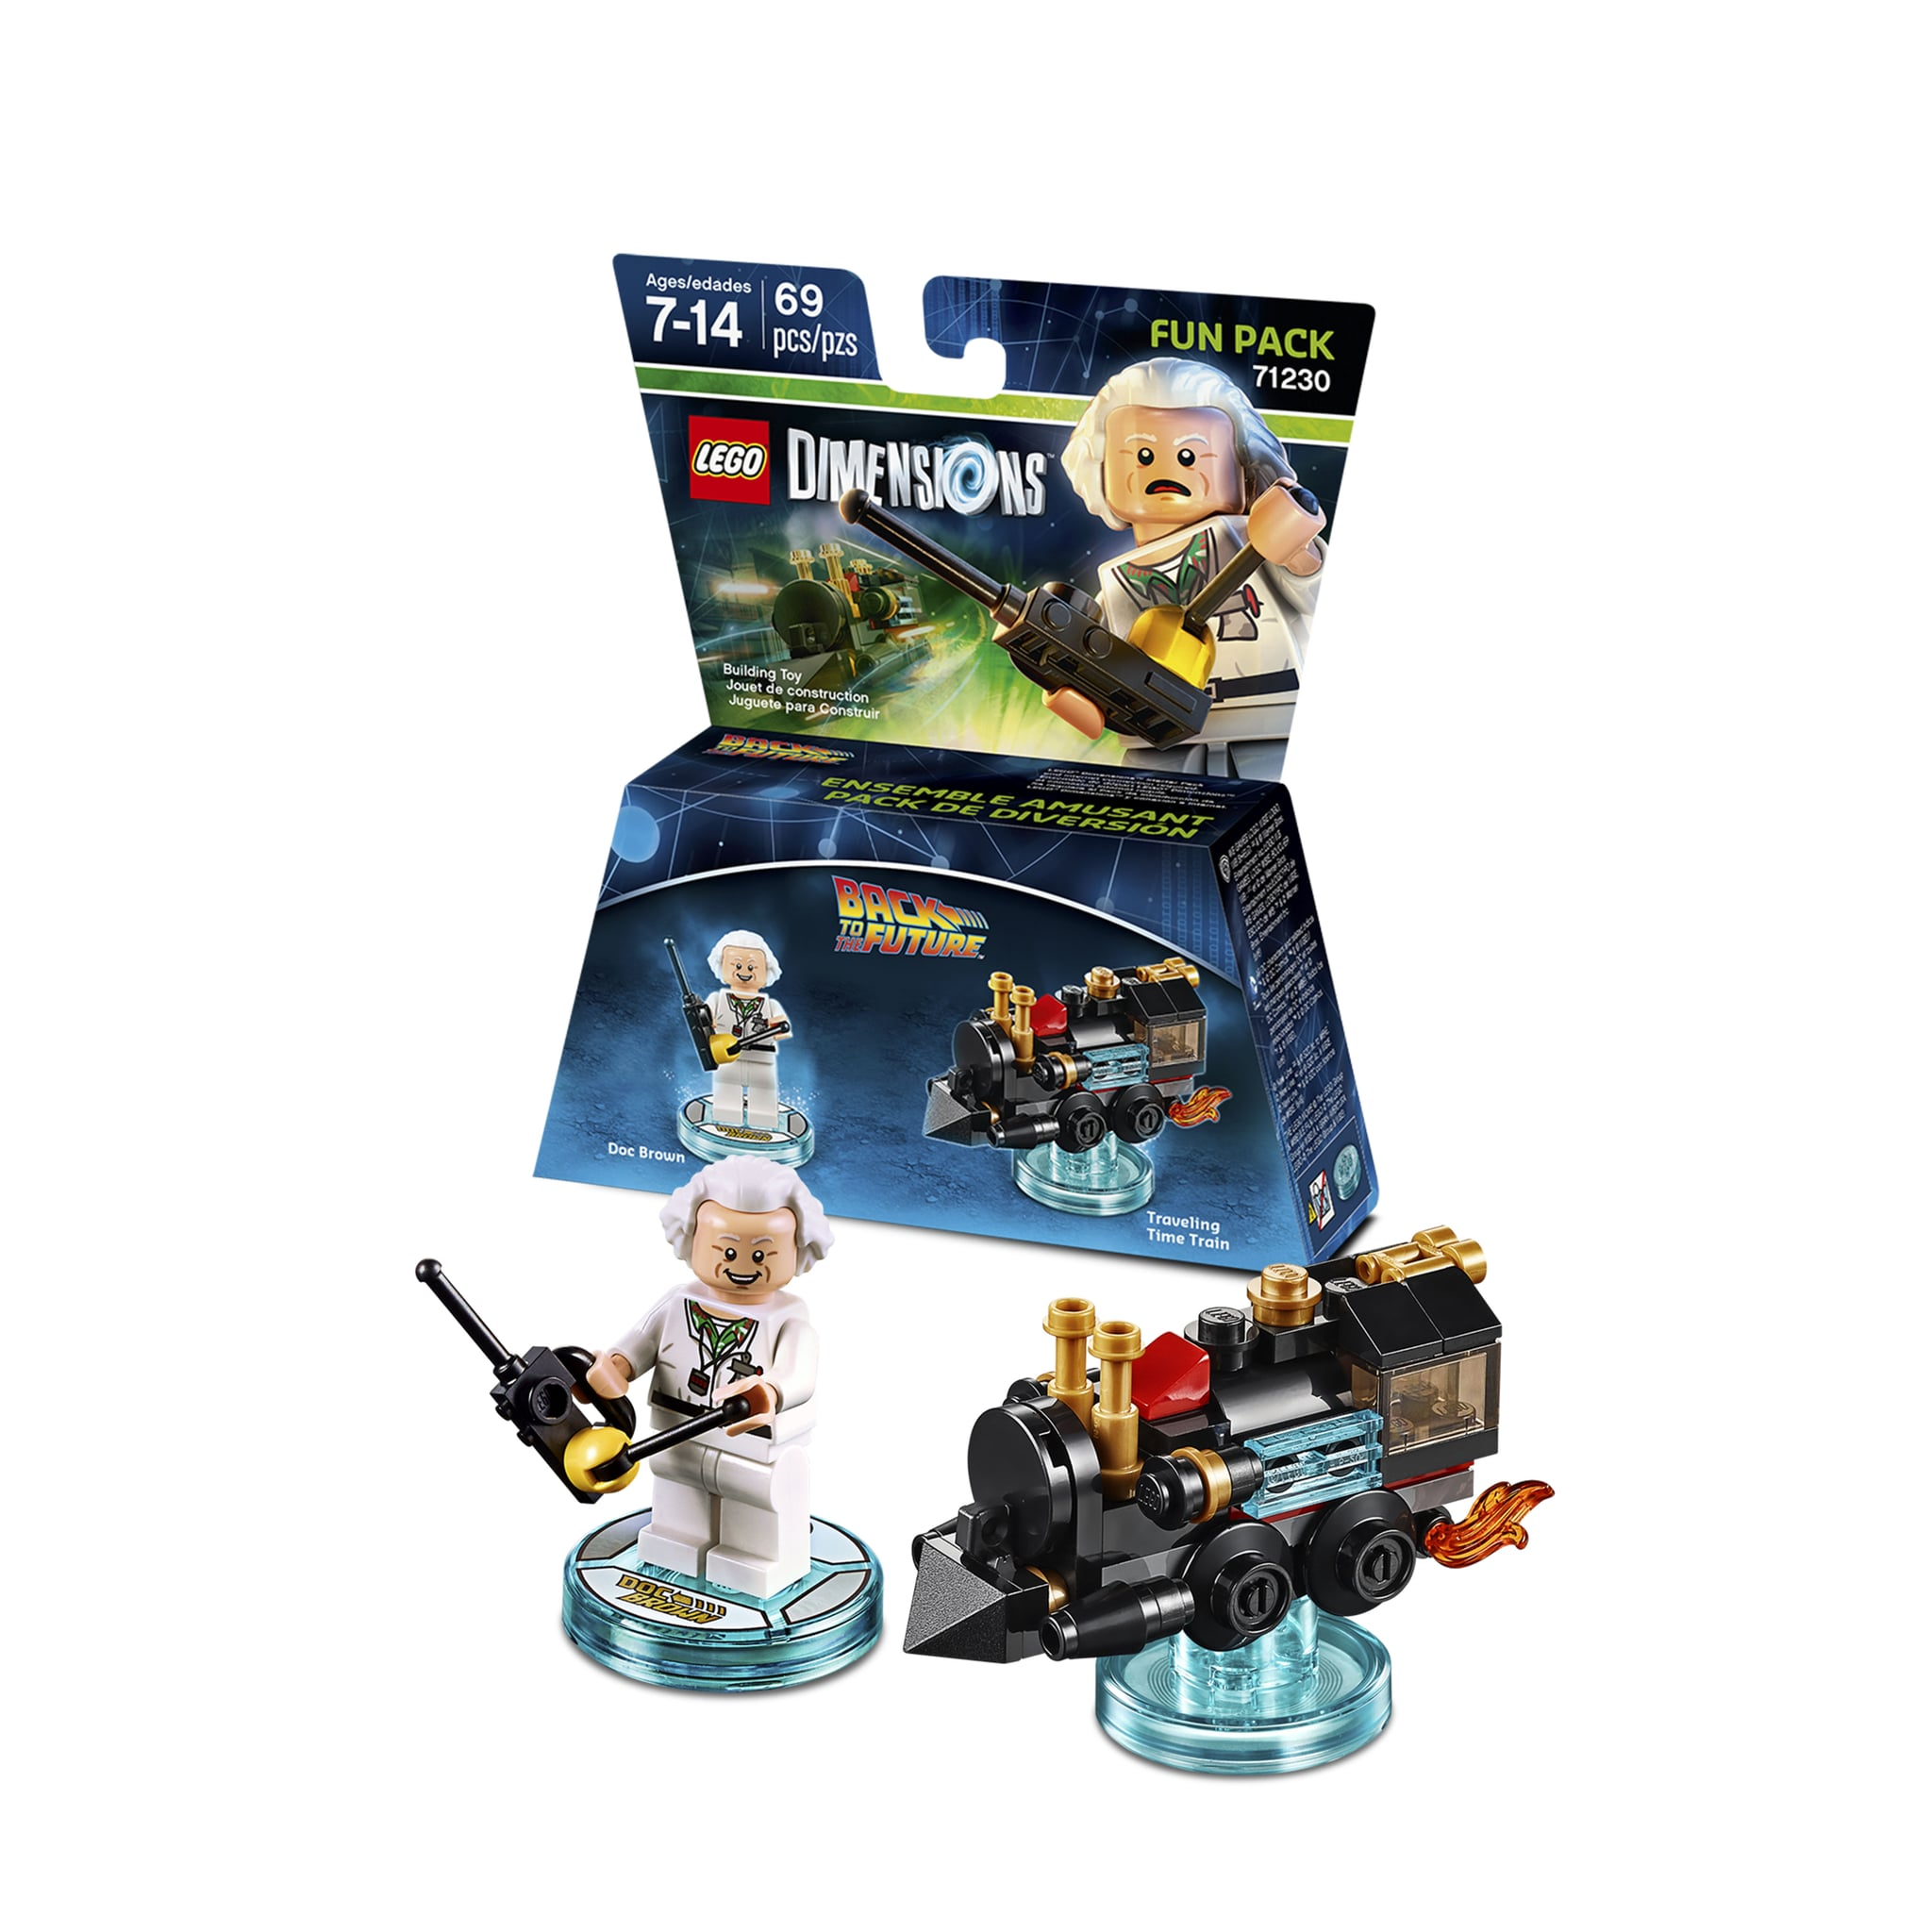 Lego Introduces Lego Dimensions Video Game | POPSUGAR Moms